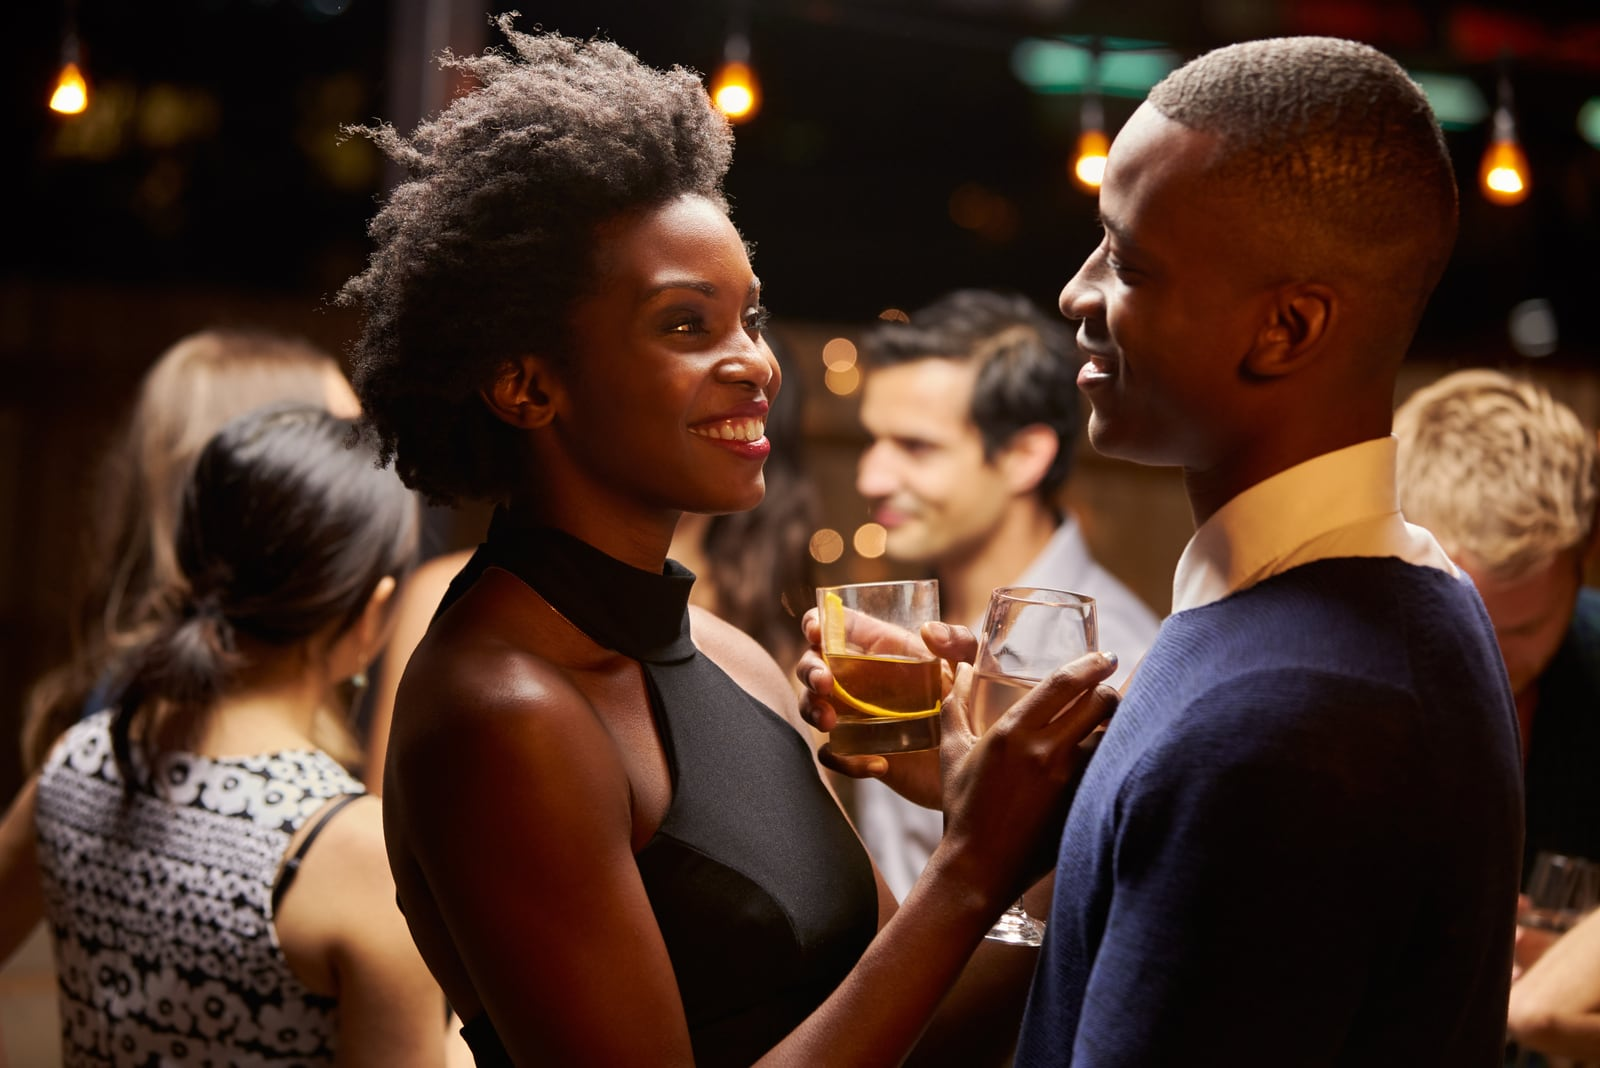 Couples Dancing And Drinking At birthday Party